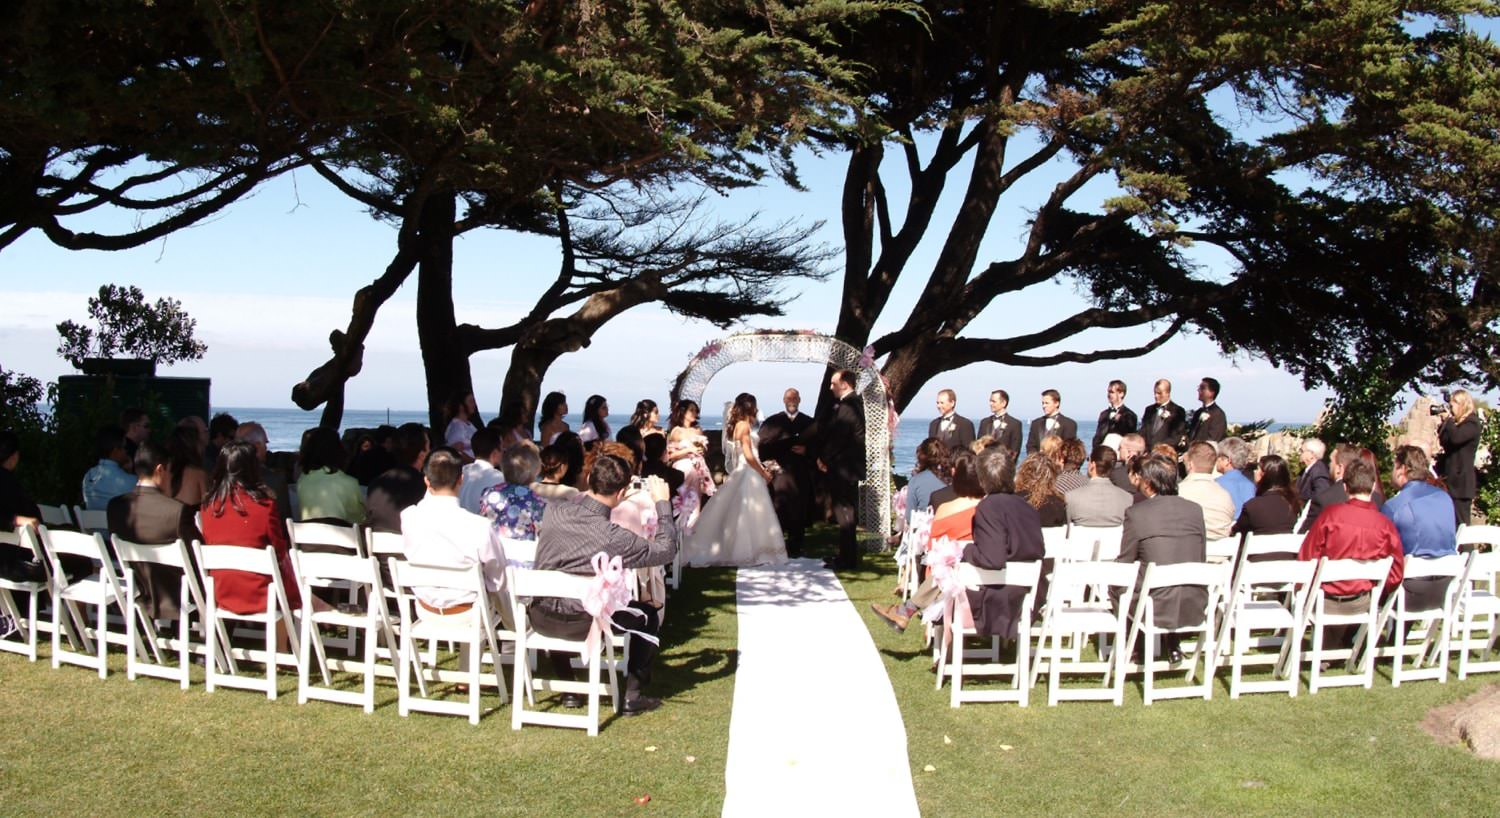 Outdoor wedding under shade tree with ocean views, white aisle runner and rows of white chairs